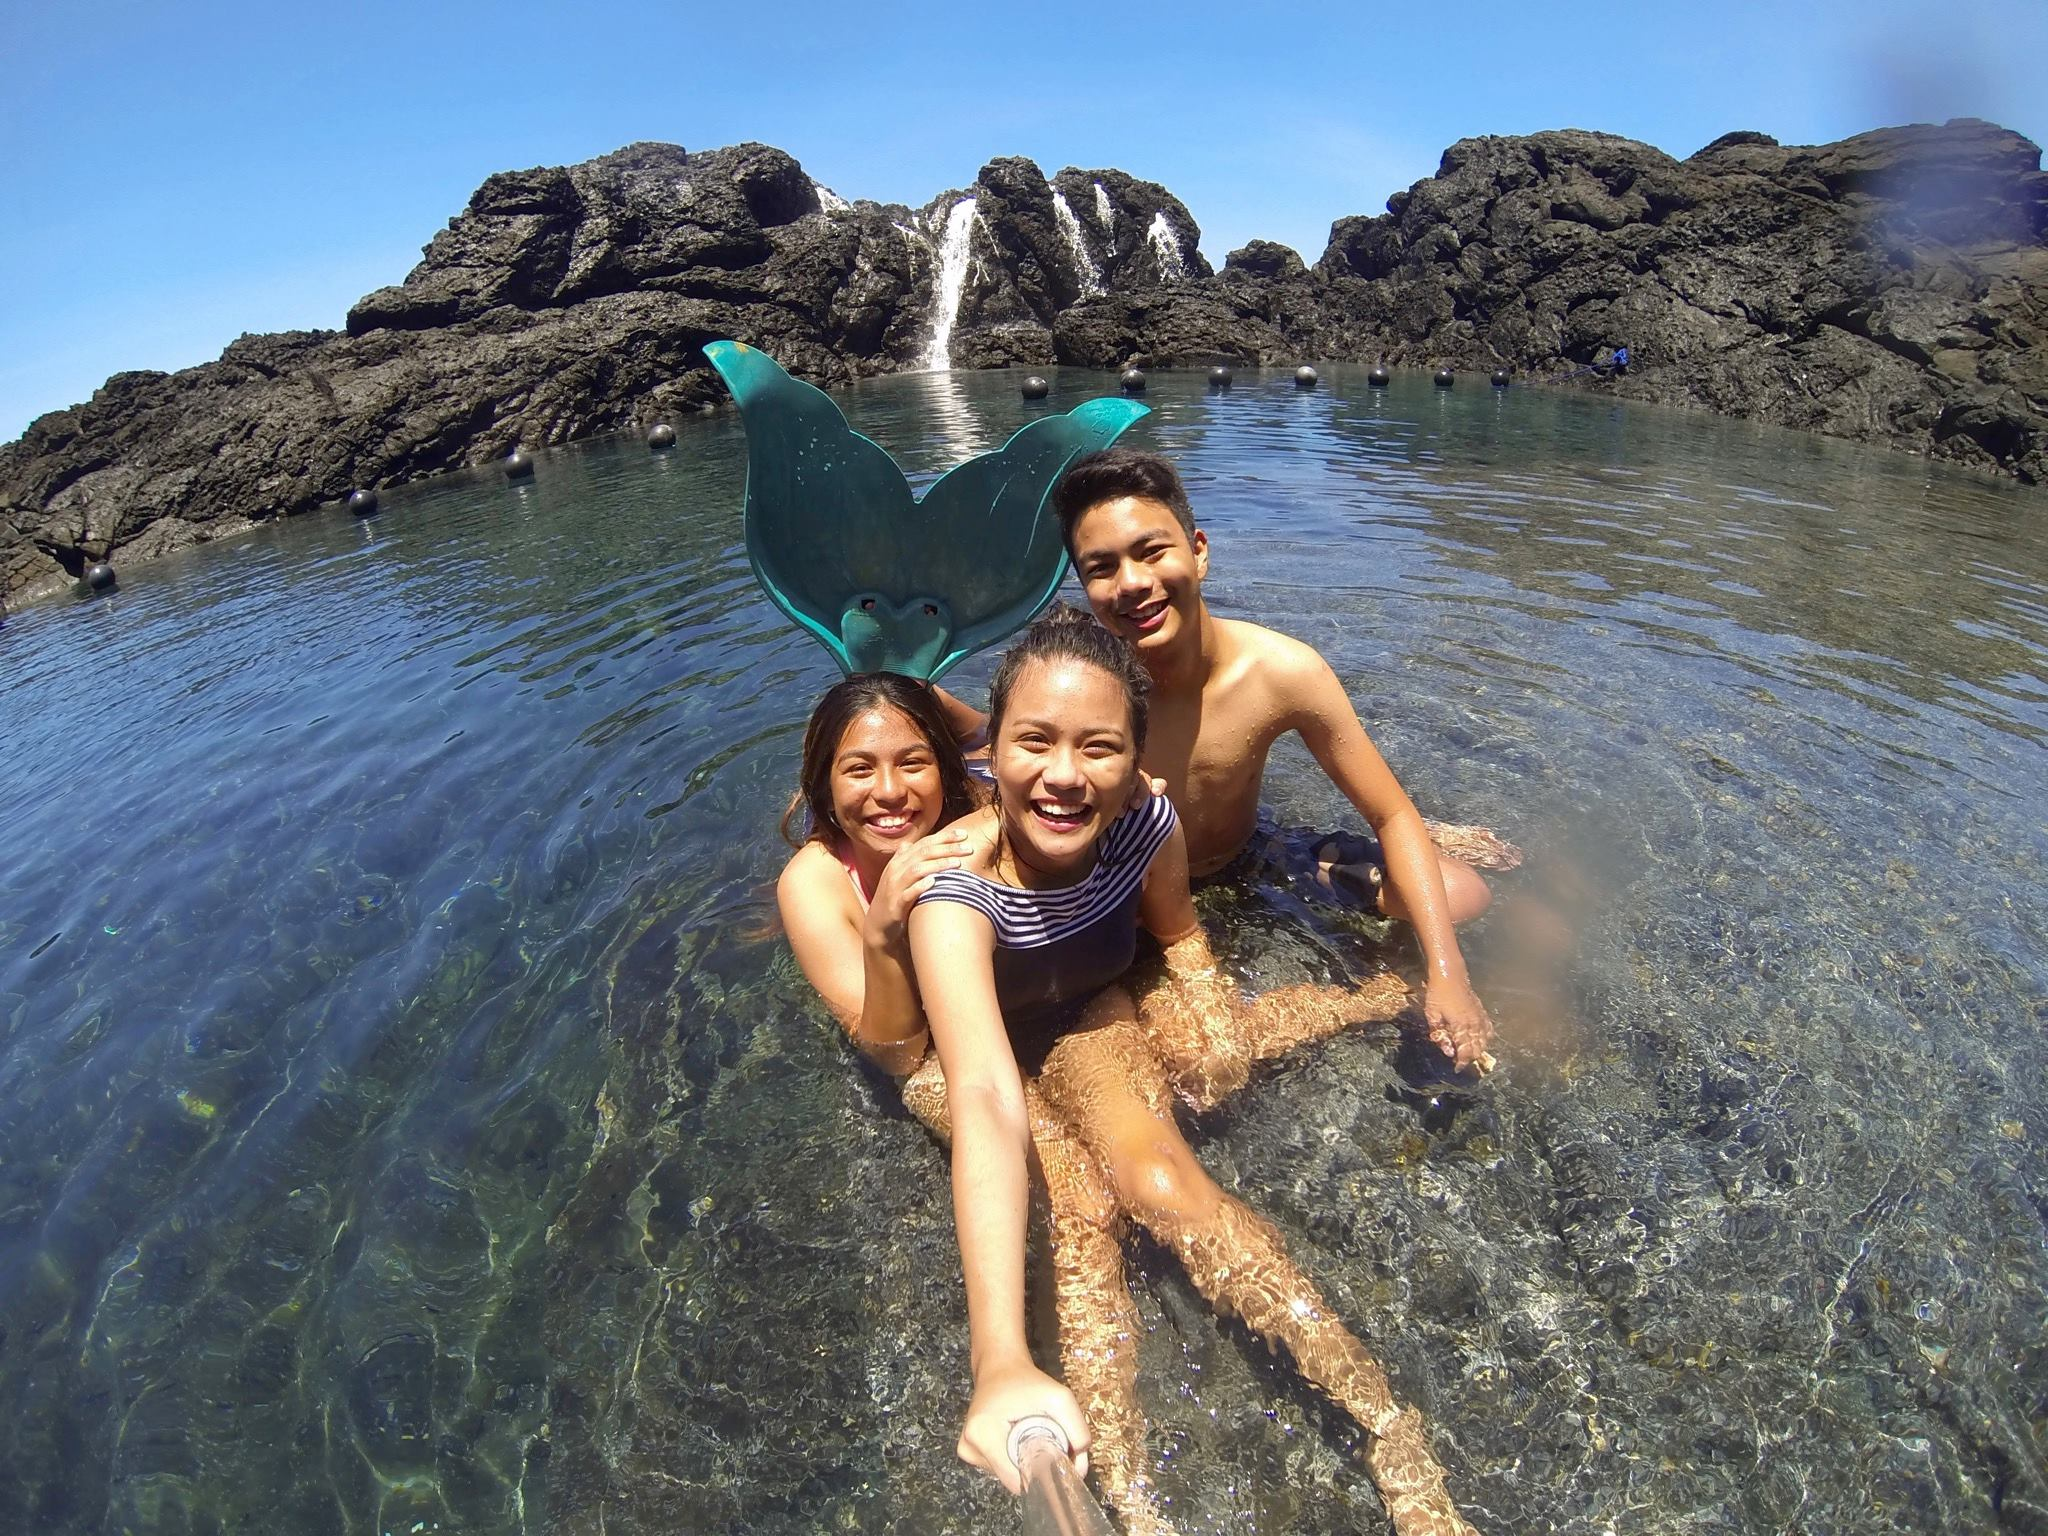 My siblings and I (with the fins)waiting for another wave to crash over us in Laswitan, a rock pool formation in Cortes,Surigao del Sur.